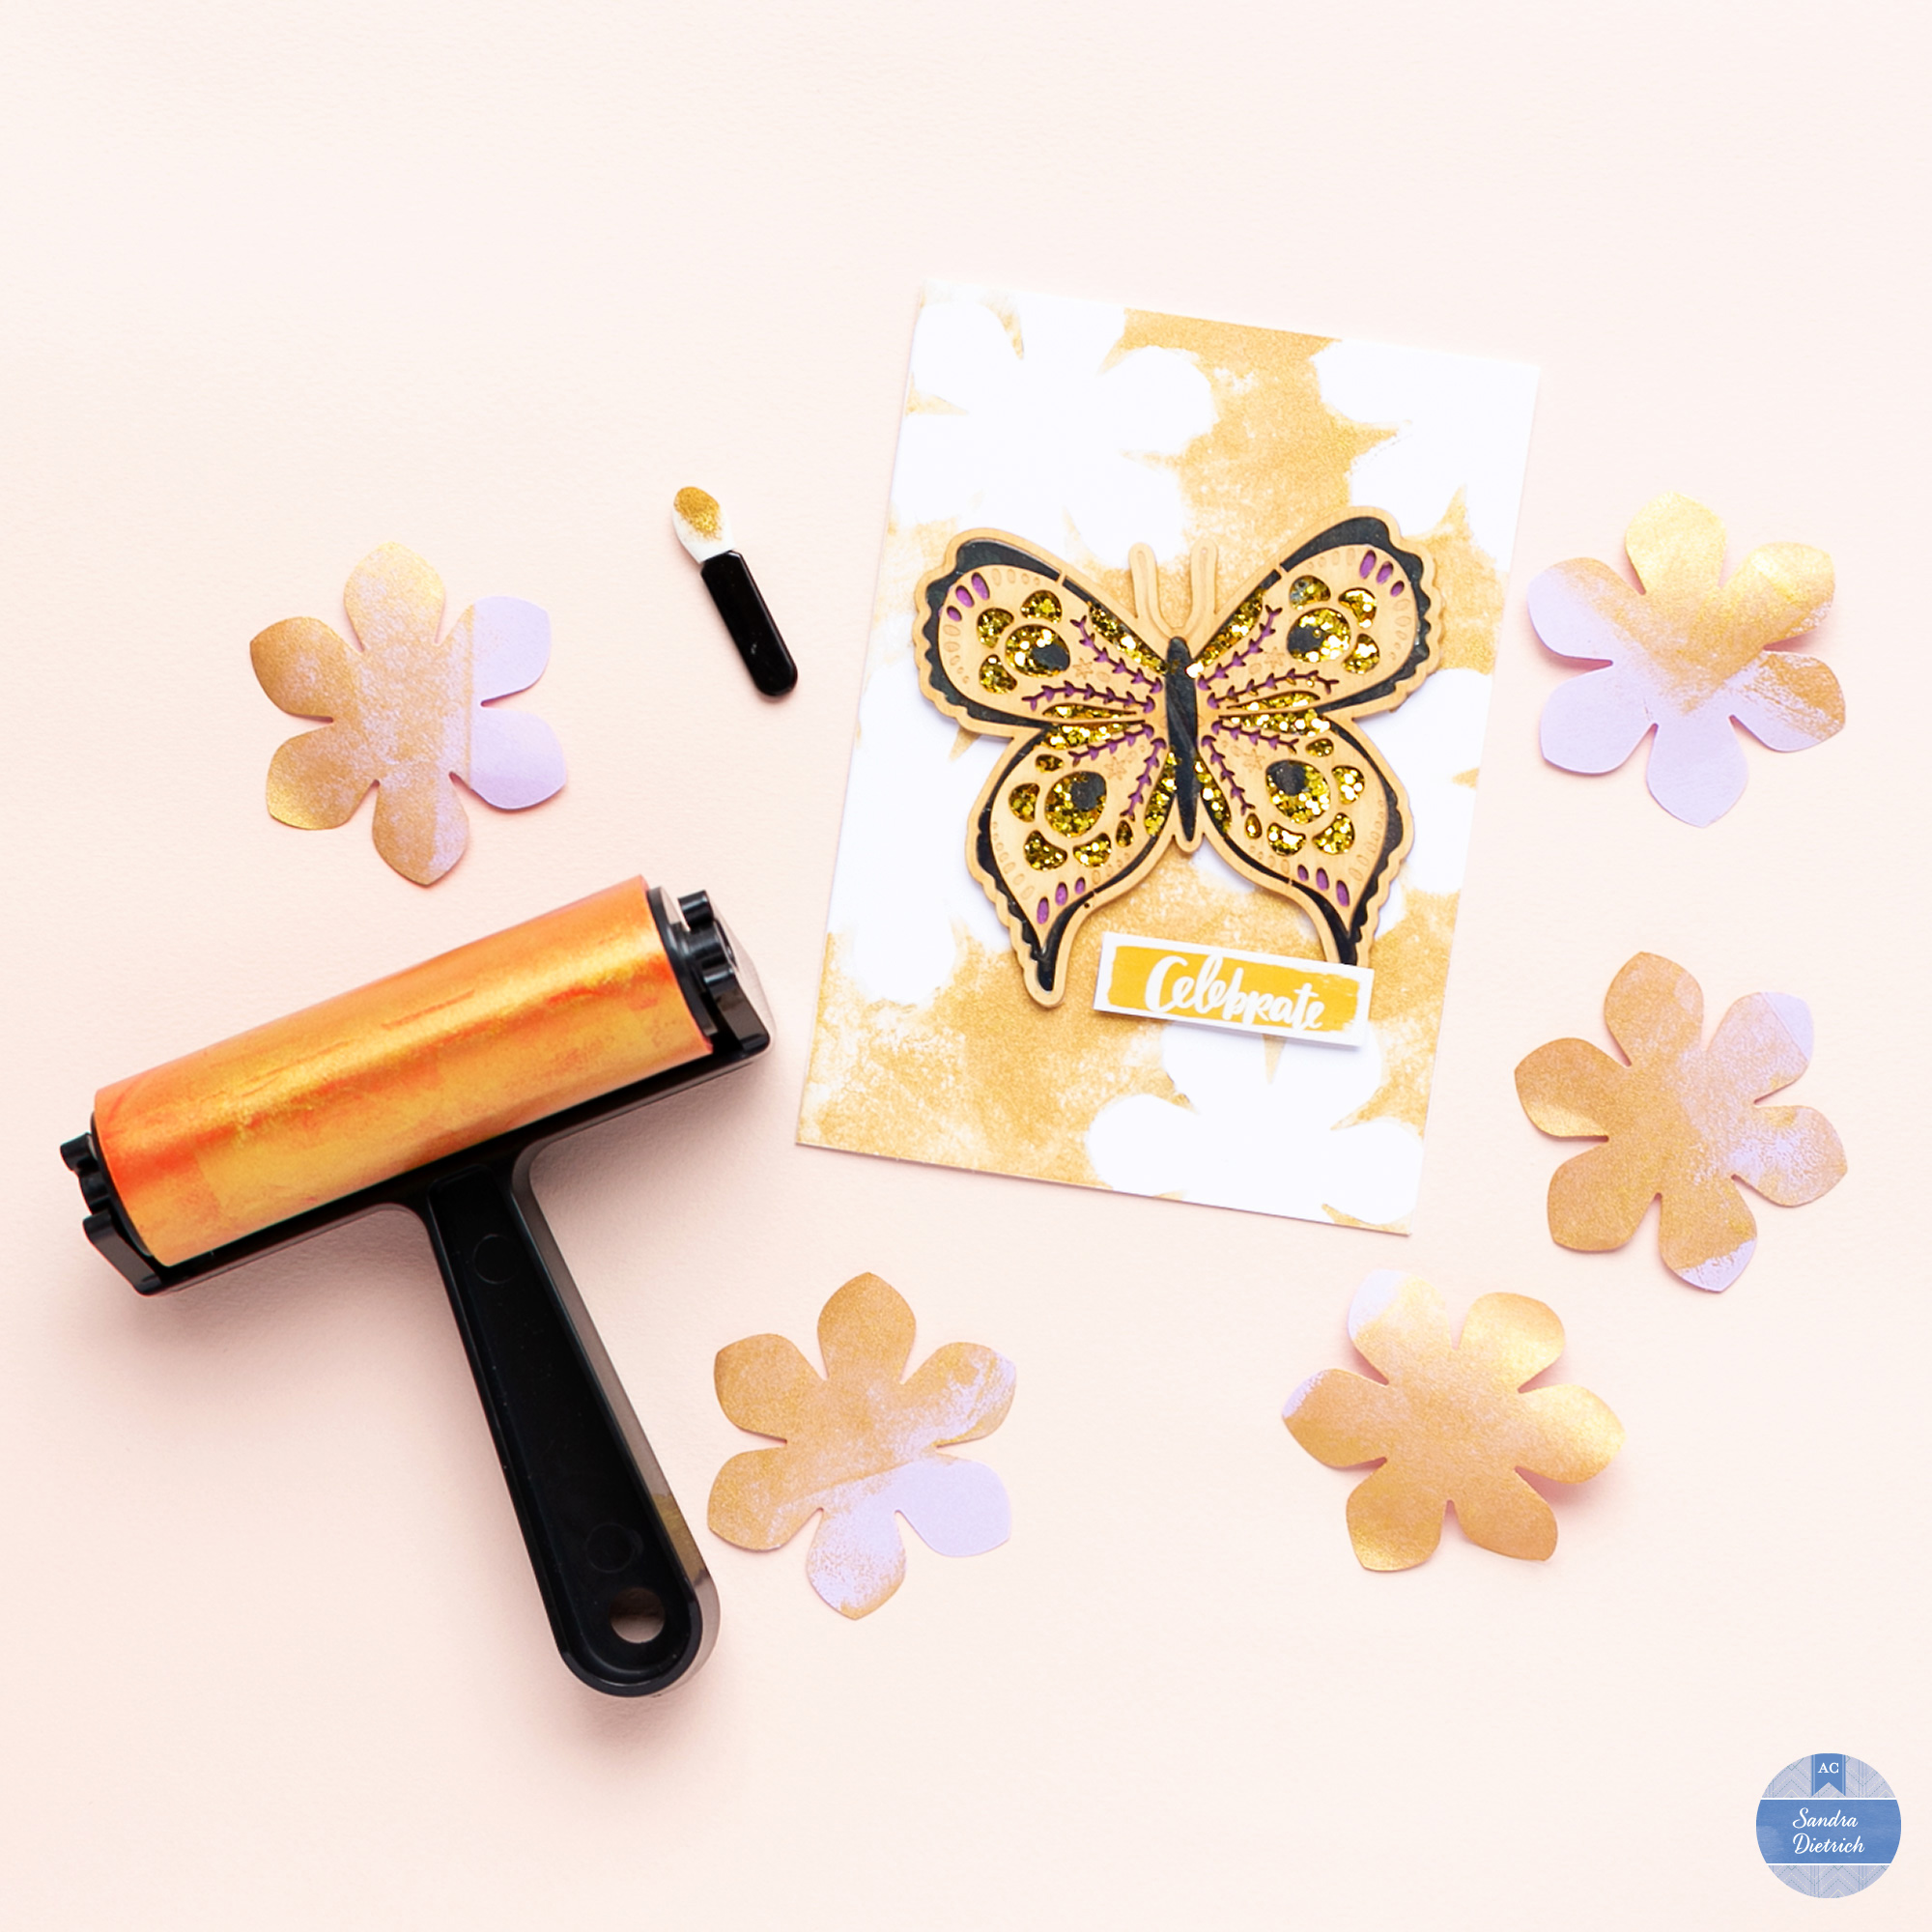 Finished card by @mojosanti for @american crafts. Nice floral background created with ink and the 'DIY Shop' brayer.